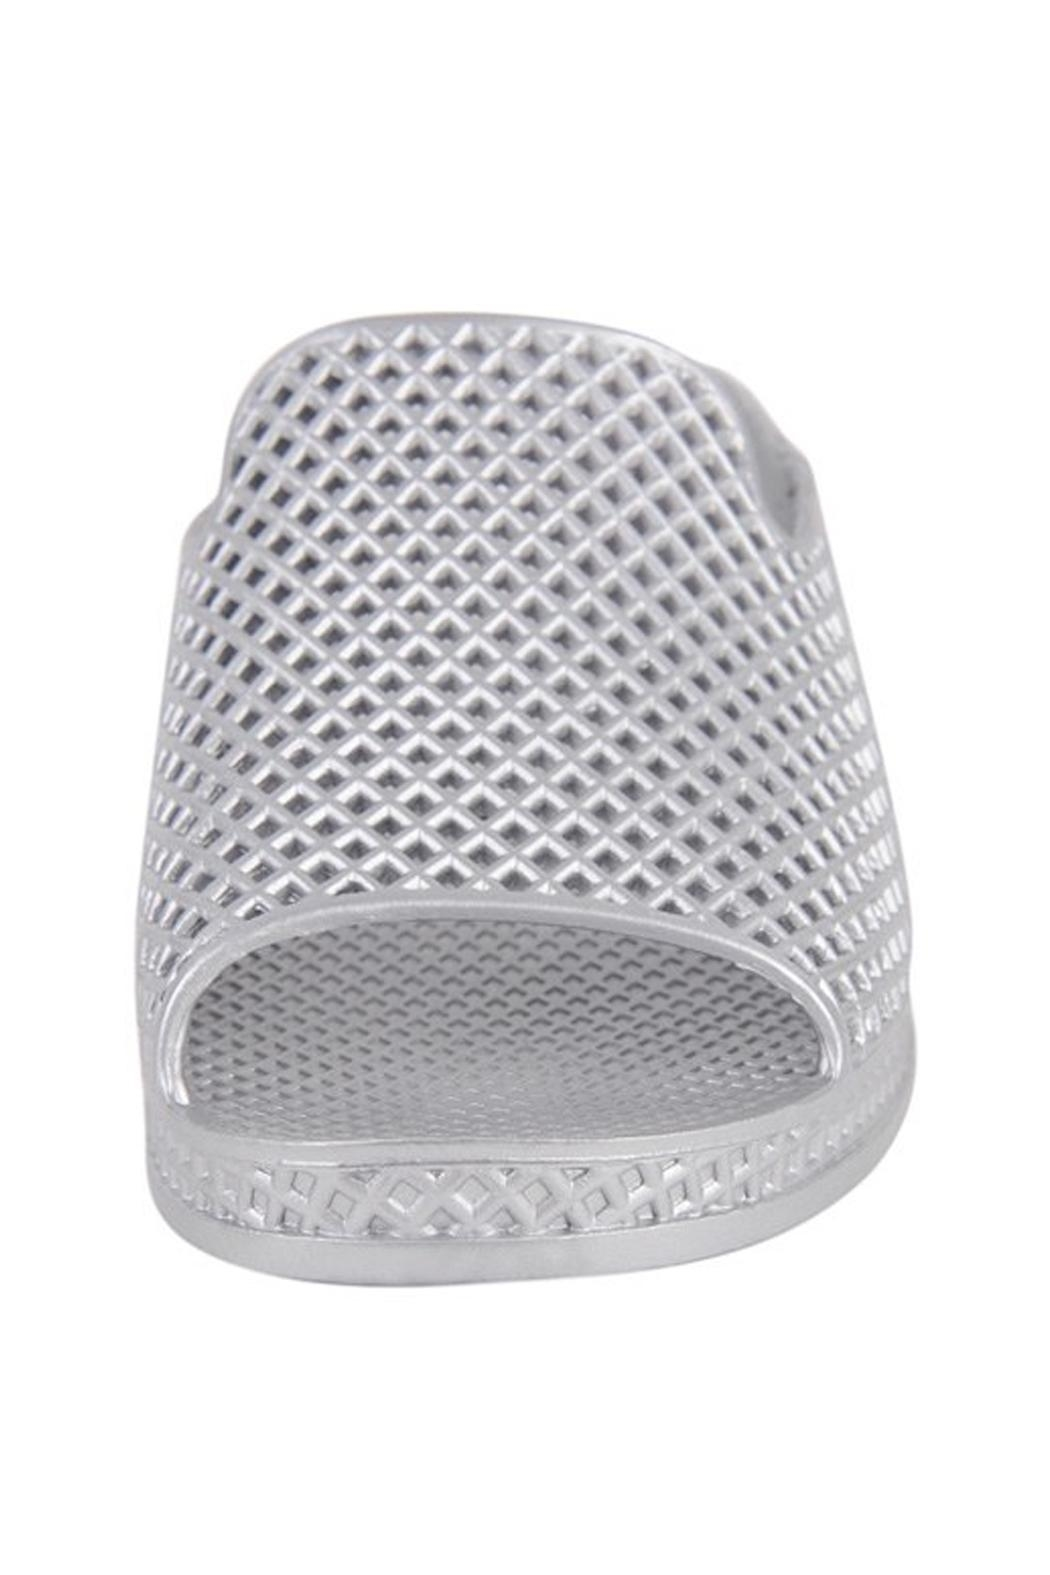 Jeffrey Campbell Silver Slip On Wedge - Front Full Image